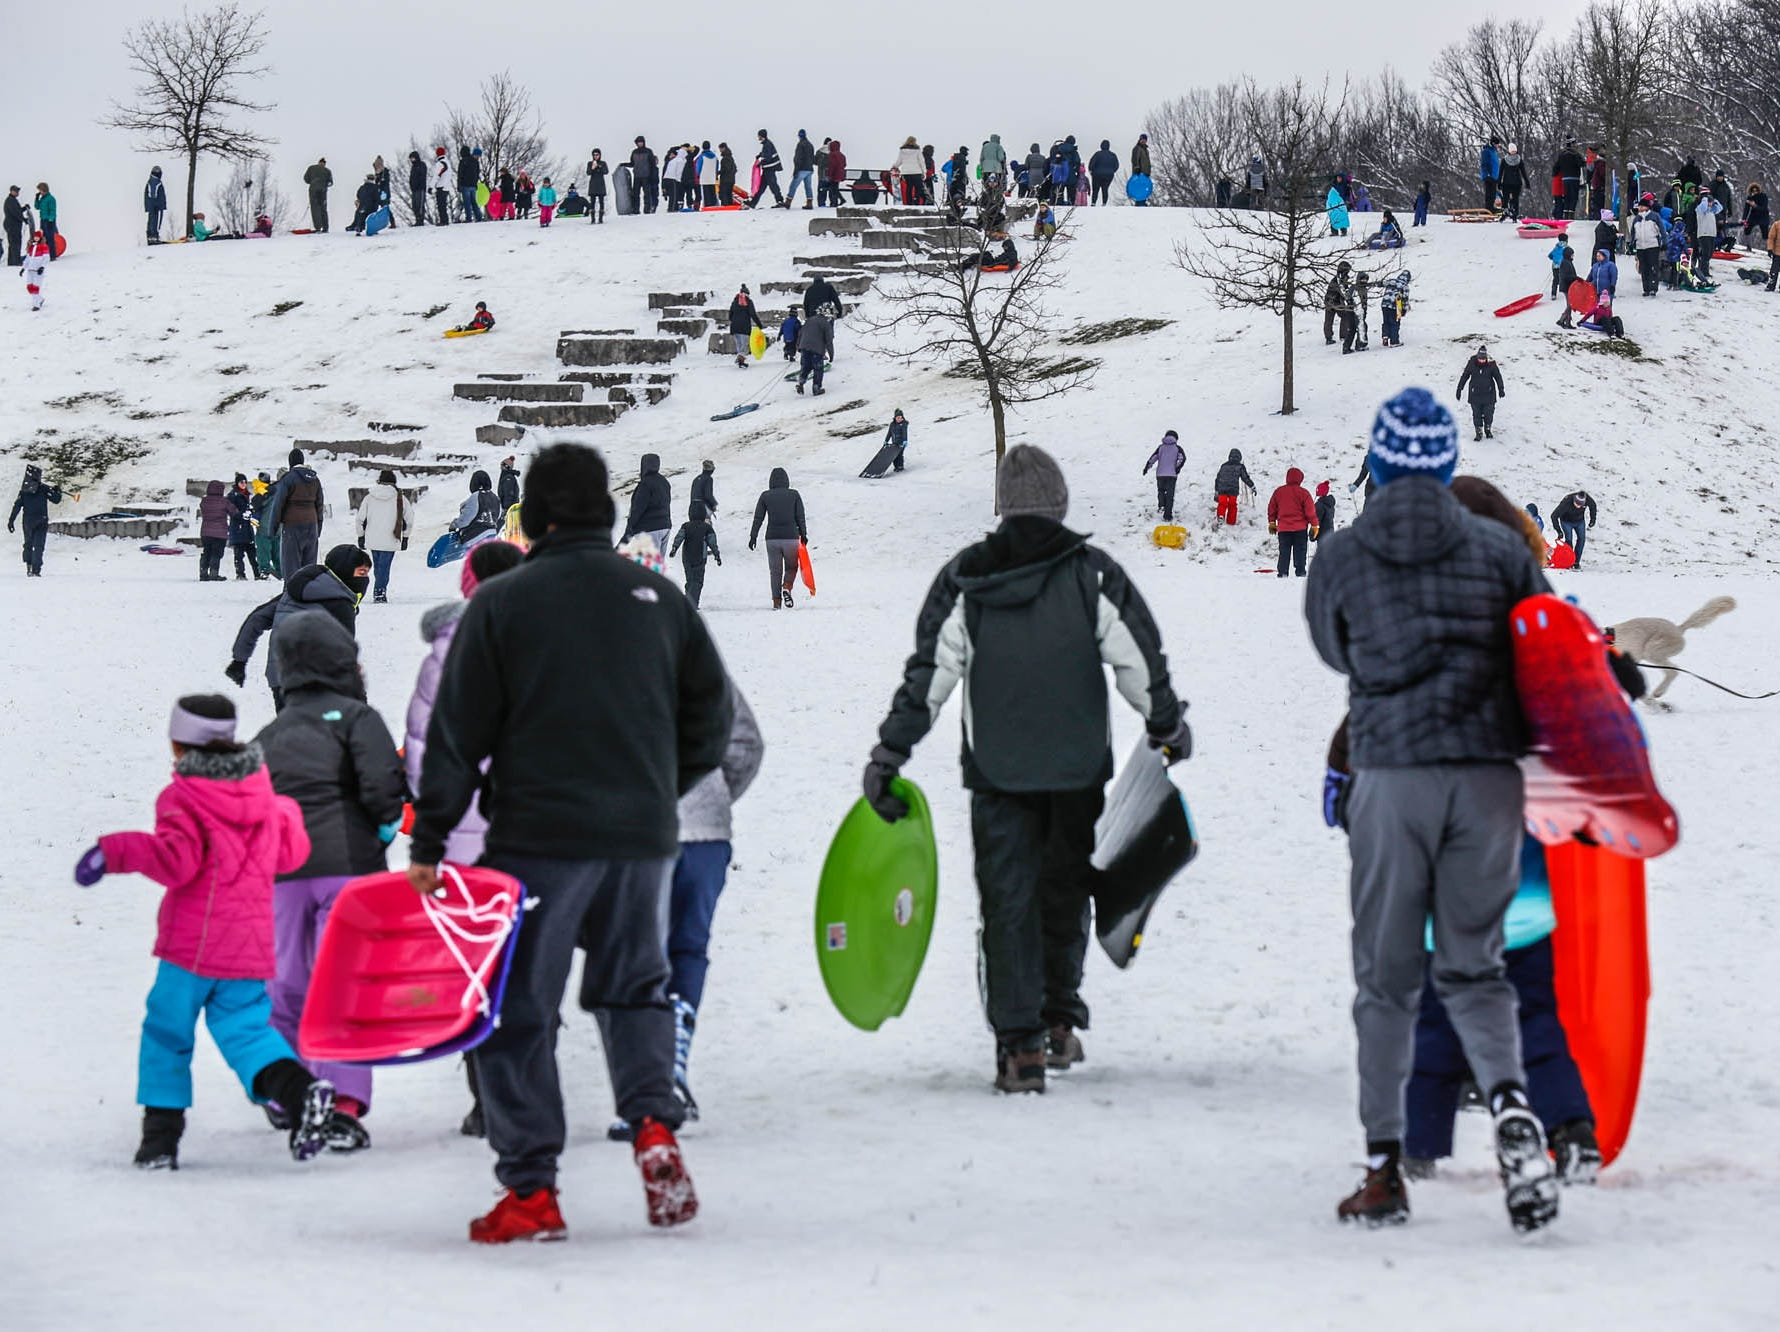 Snow lovers of all ages descend on the sledding hill at West Park in Carmel Ind. on Sunday, Jan. 13, 2019.